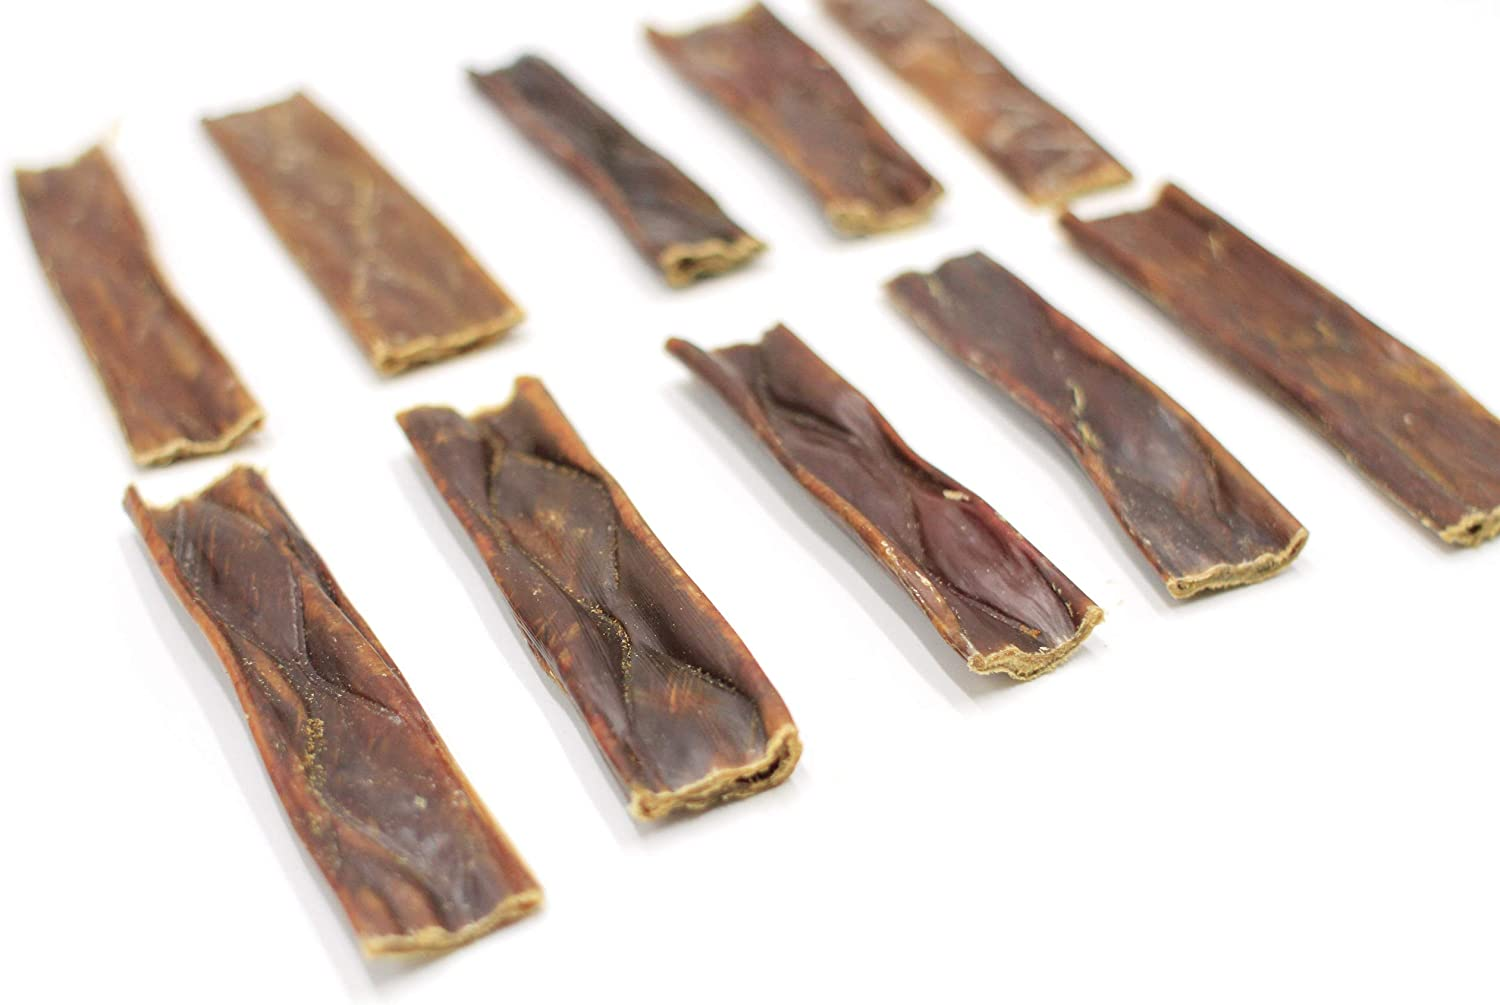 Nature Gnaws Beef Jerky Chews - 100% Natural Beef Sticks for Small Dogs - Single Ingredient Grass Fed Beef Chewy Dog Treats